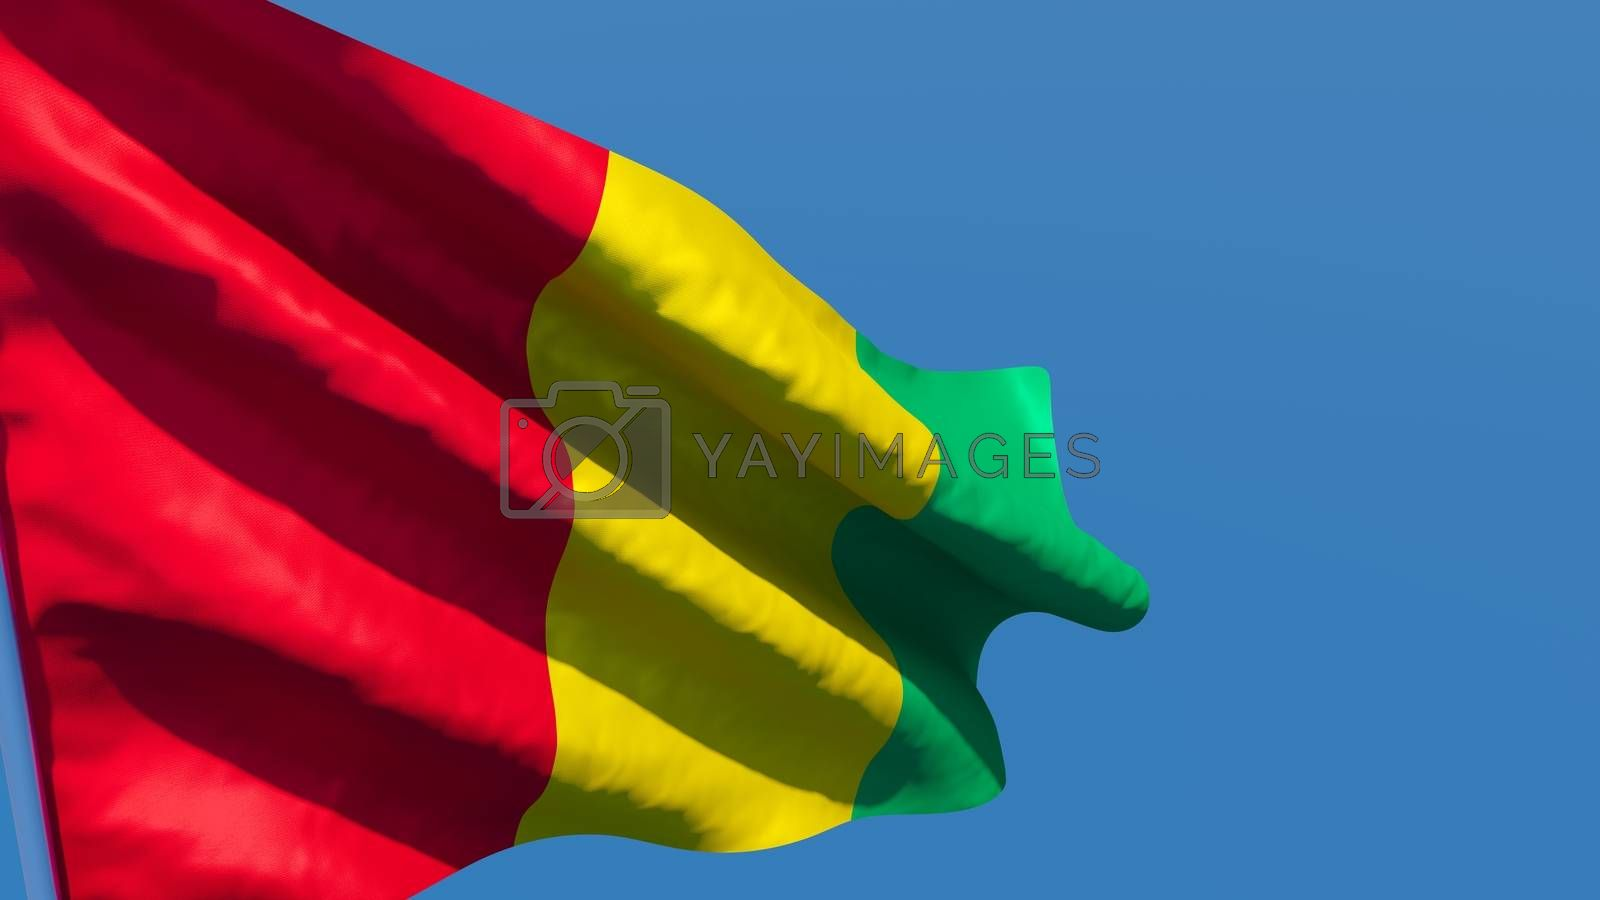 3D rendering of the national flag of Guinea waving in the wind against a blue sky